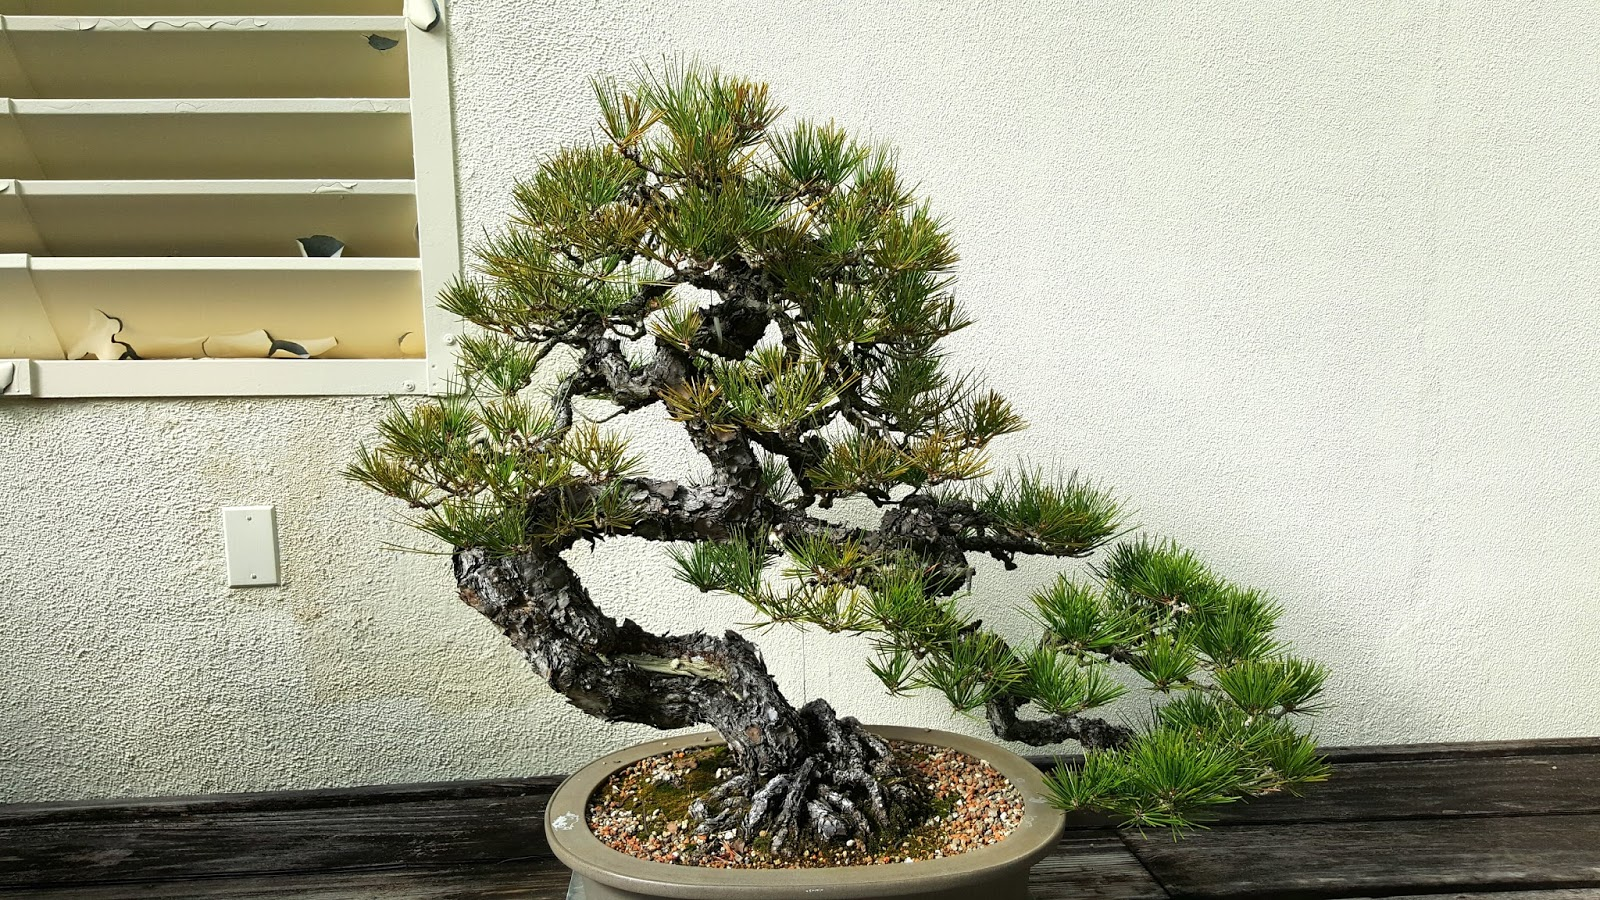 Bonsai Misadventures The Bonsai Of The National Bonsai And